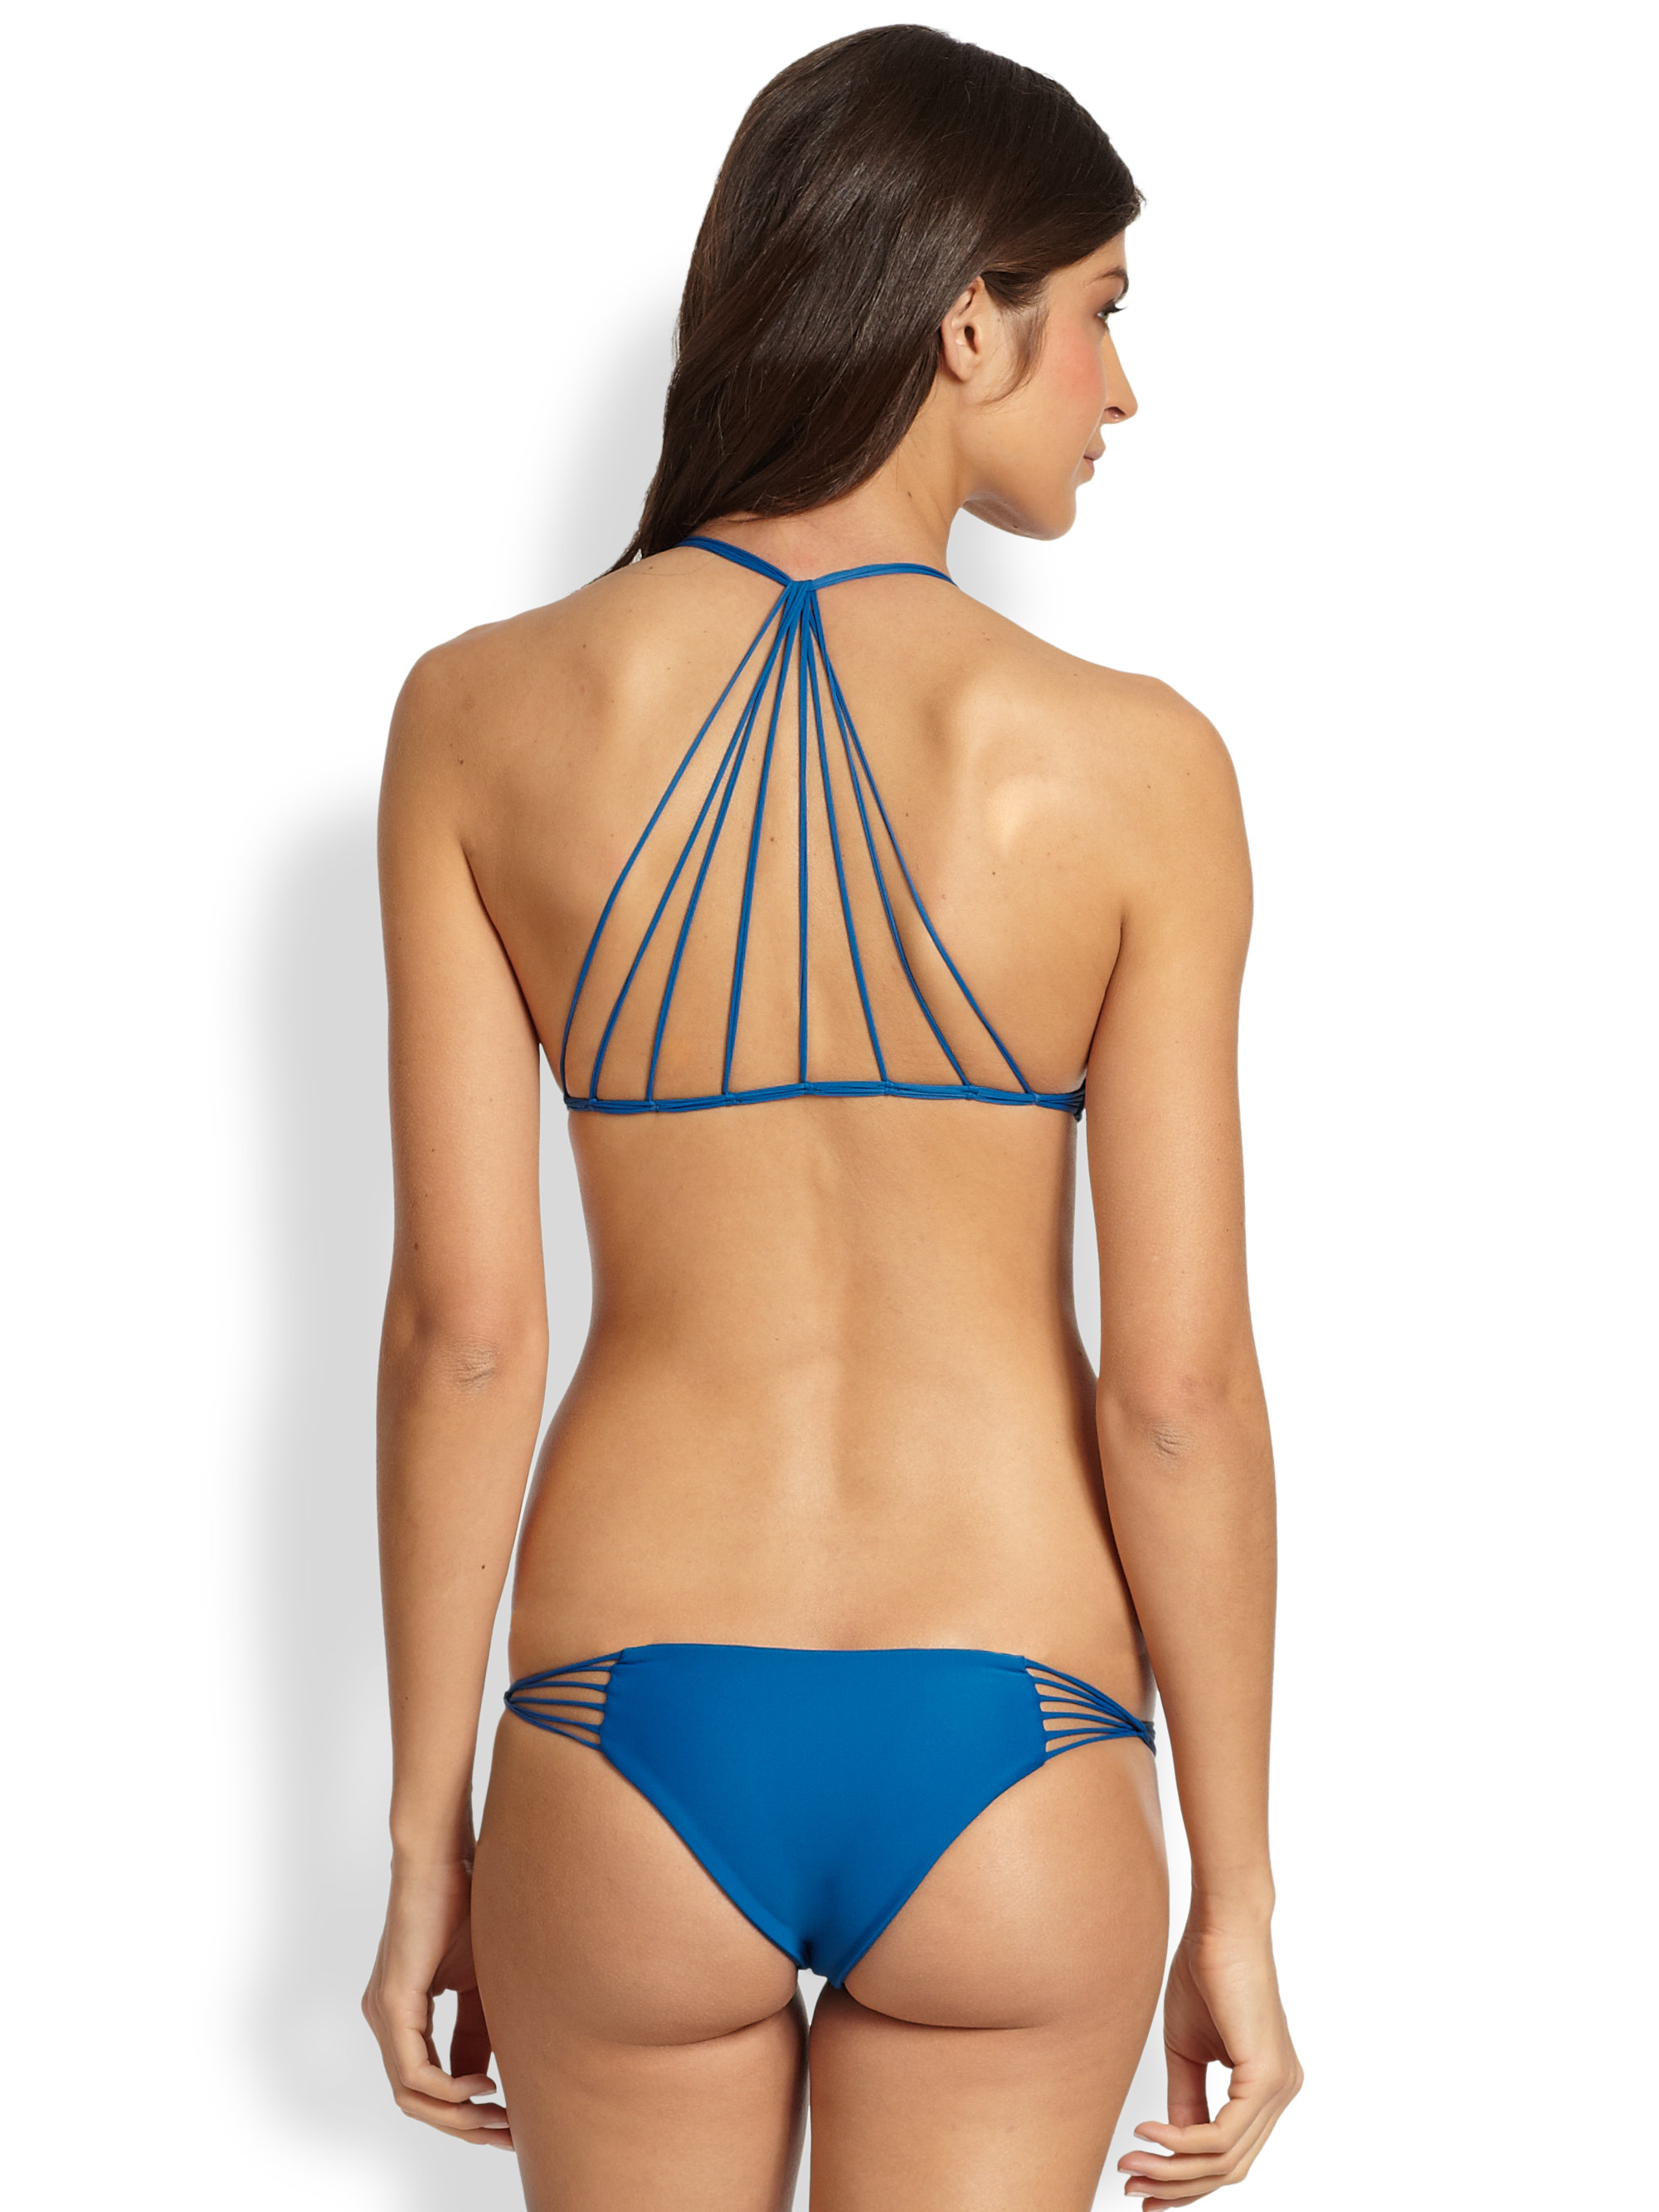 Racerback bikini tops - results from brands Lole, Victoria's Secret, Body Glove, products like